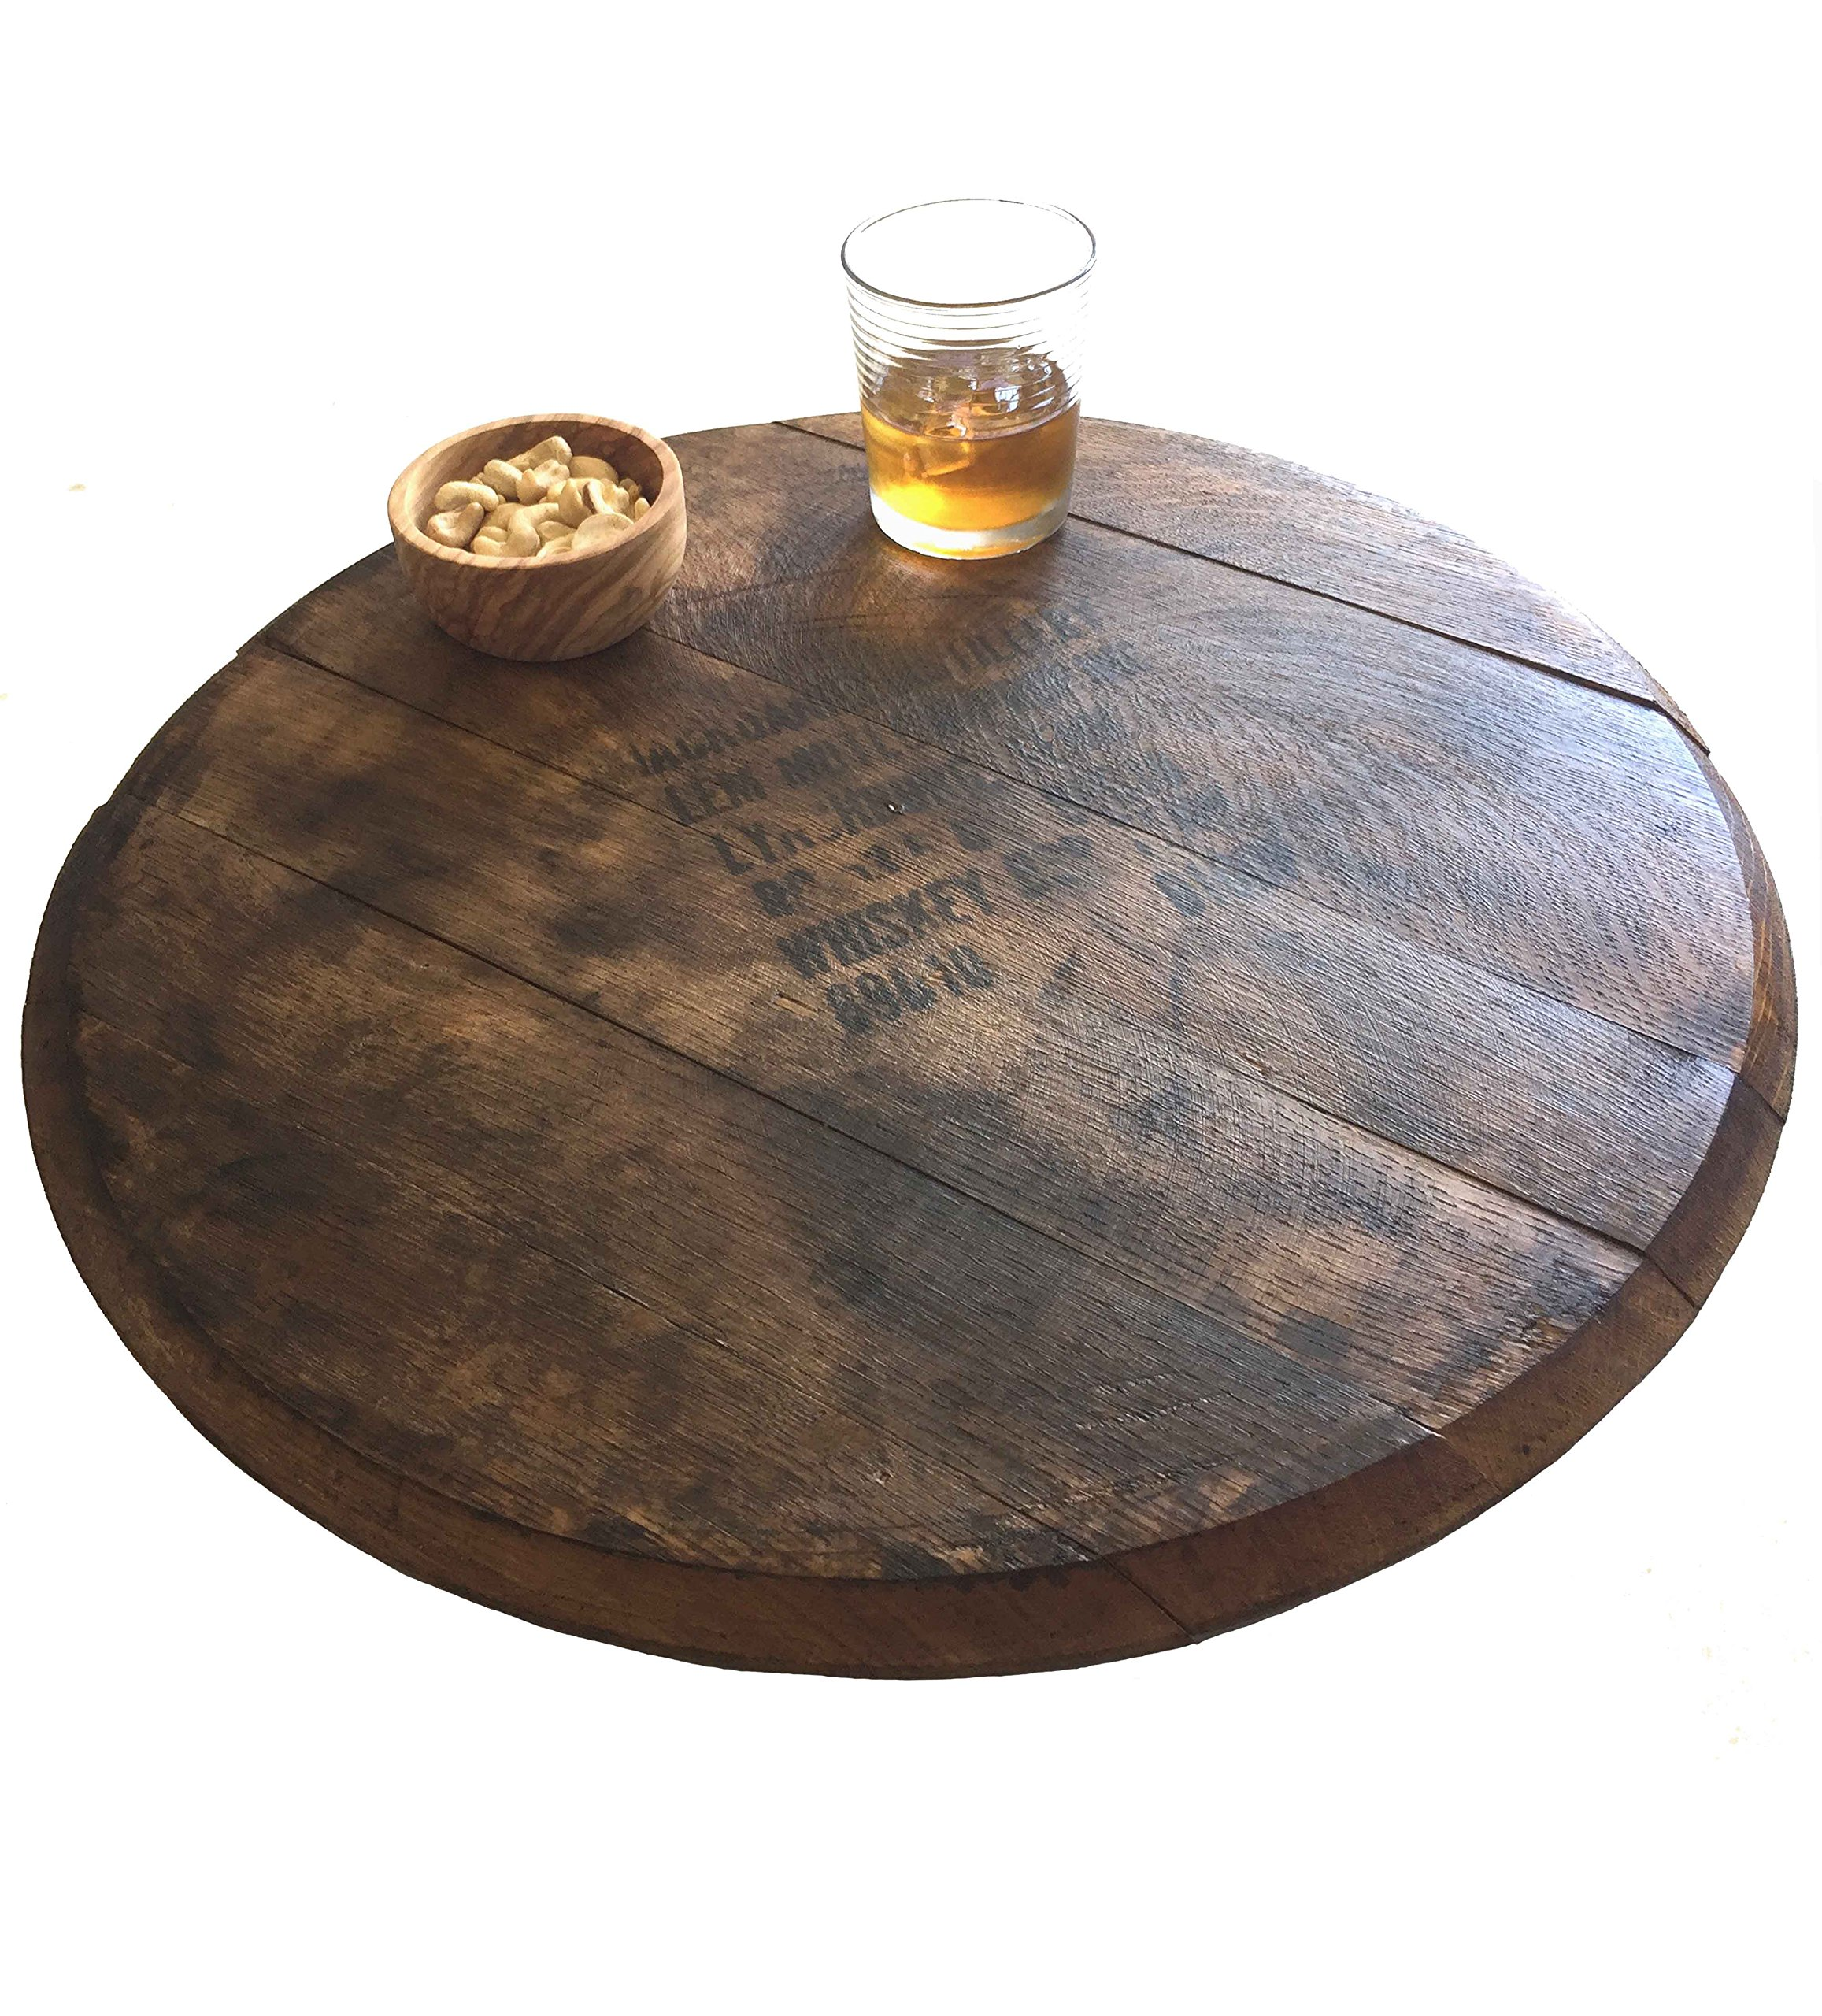 Vintage Jack Daniel's Whiskey Bourbon Barrel Lazy Susan, 21-Inches by Rustic Wall Co. by Rustic Wall Co.